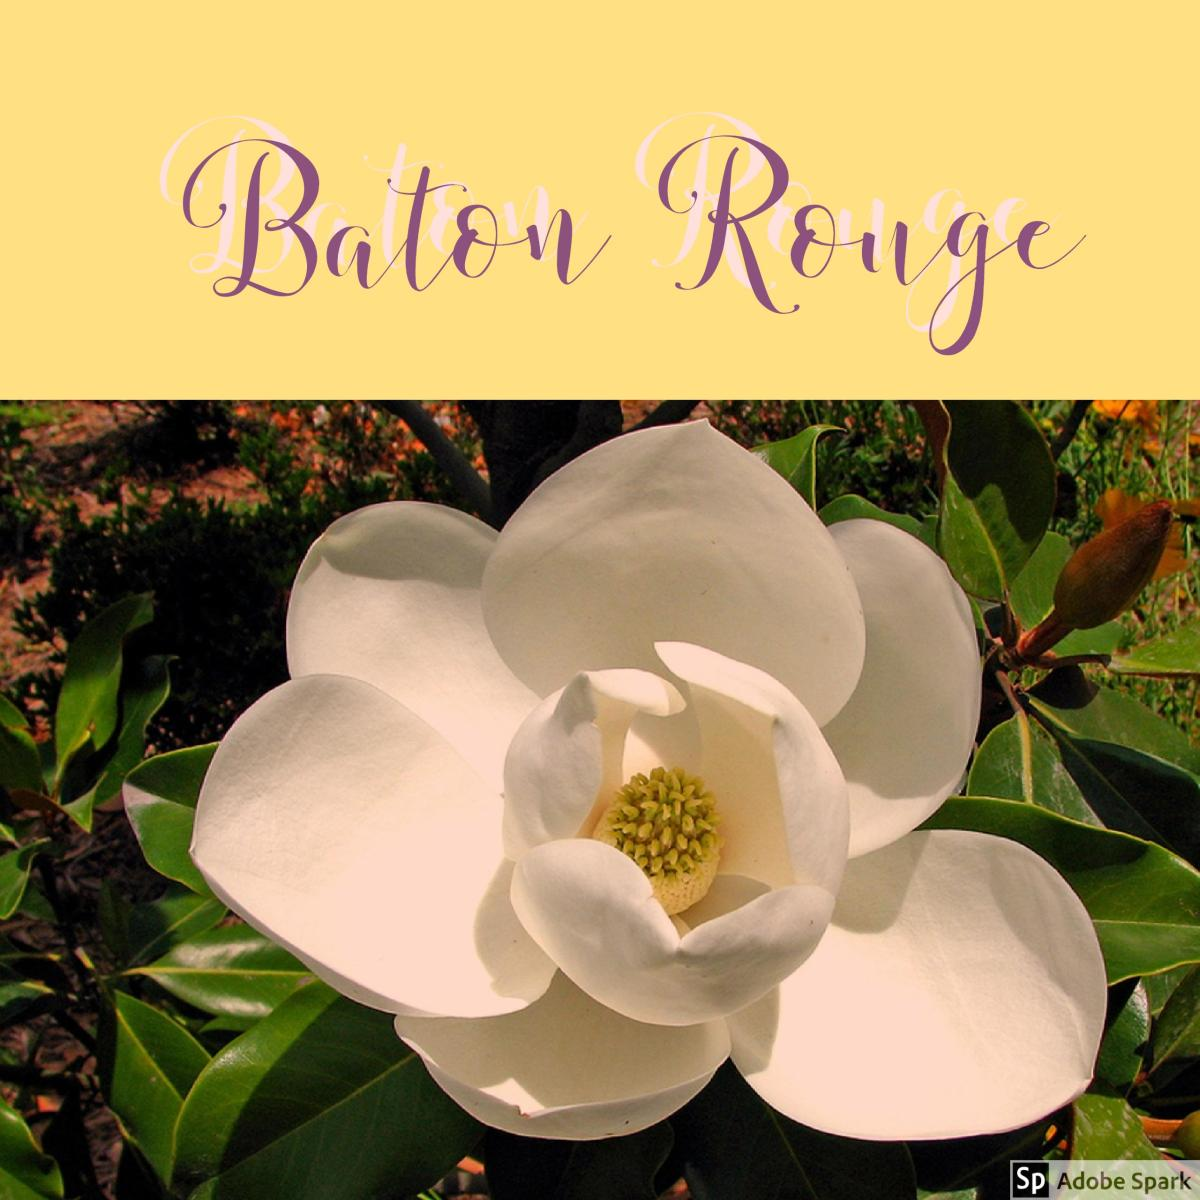 Callin' Baton Rouge- The Countless Reasons to Visit